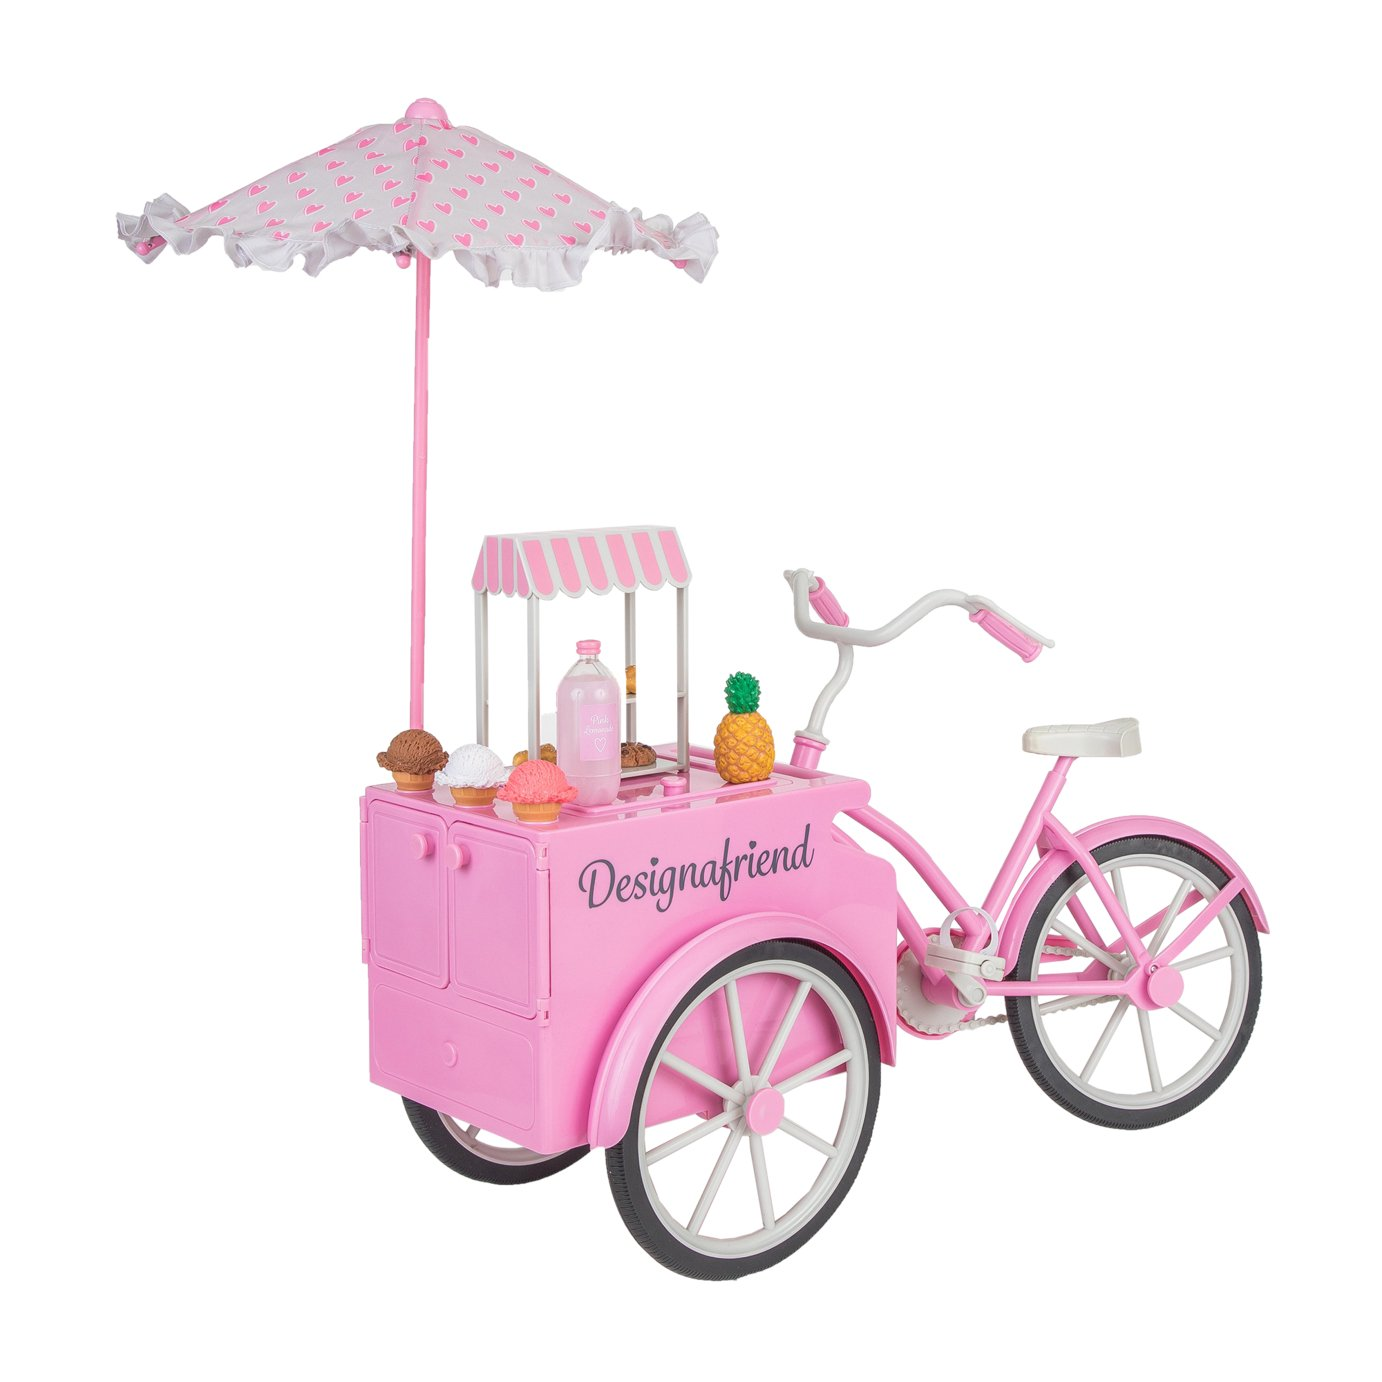 Chad Valley Designafriend Treat Cycle Cart